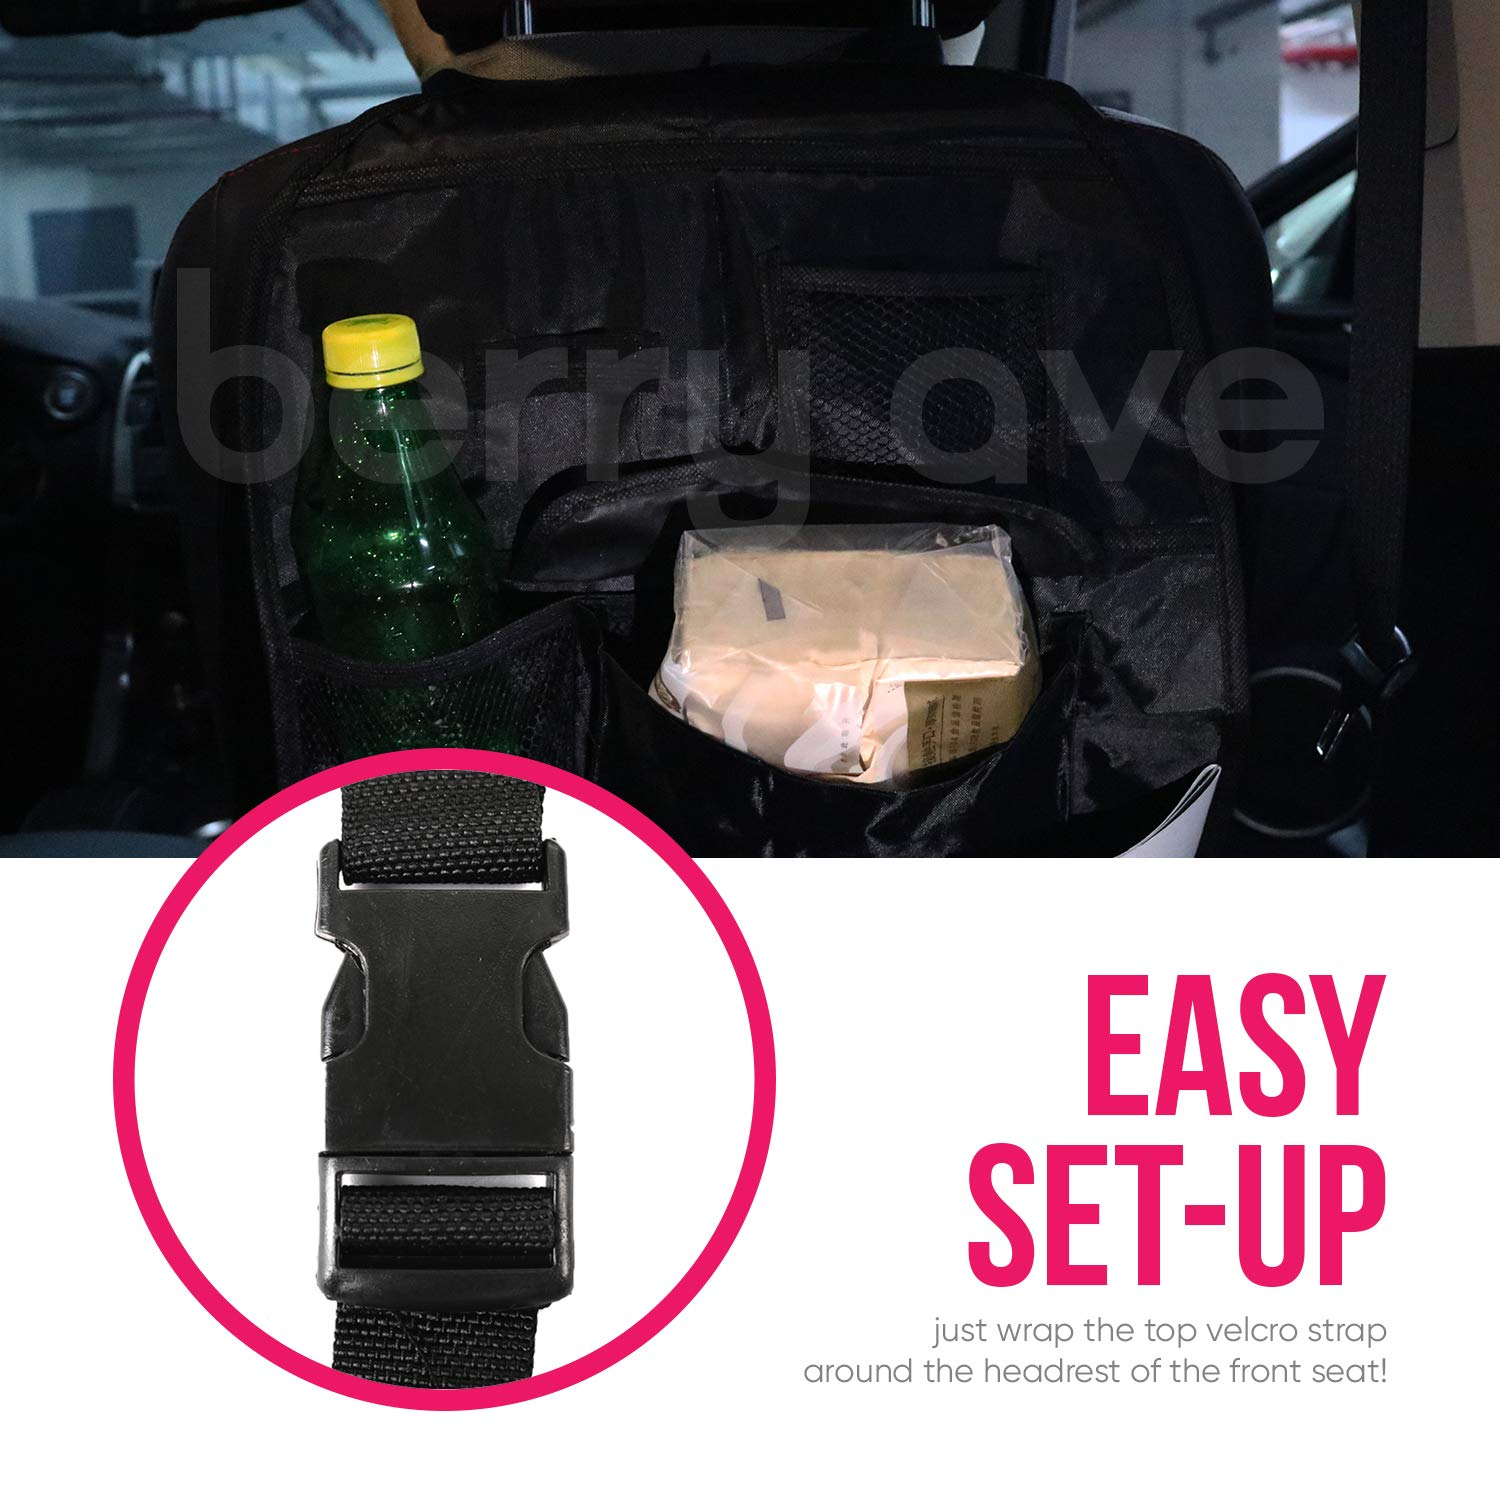 Drinks Tablets and More Car and Truck Seat Organizer with Large Storage and Protection Berry Ave Backseat Organizer Backseat Car Storage with 12 Compartments for Holding Food Toys